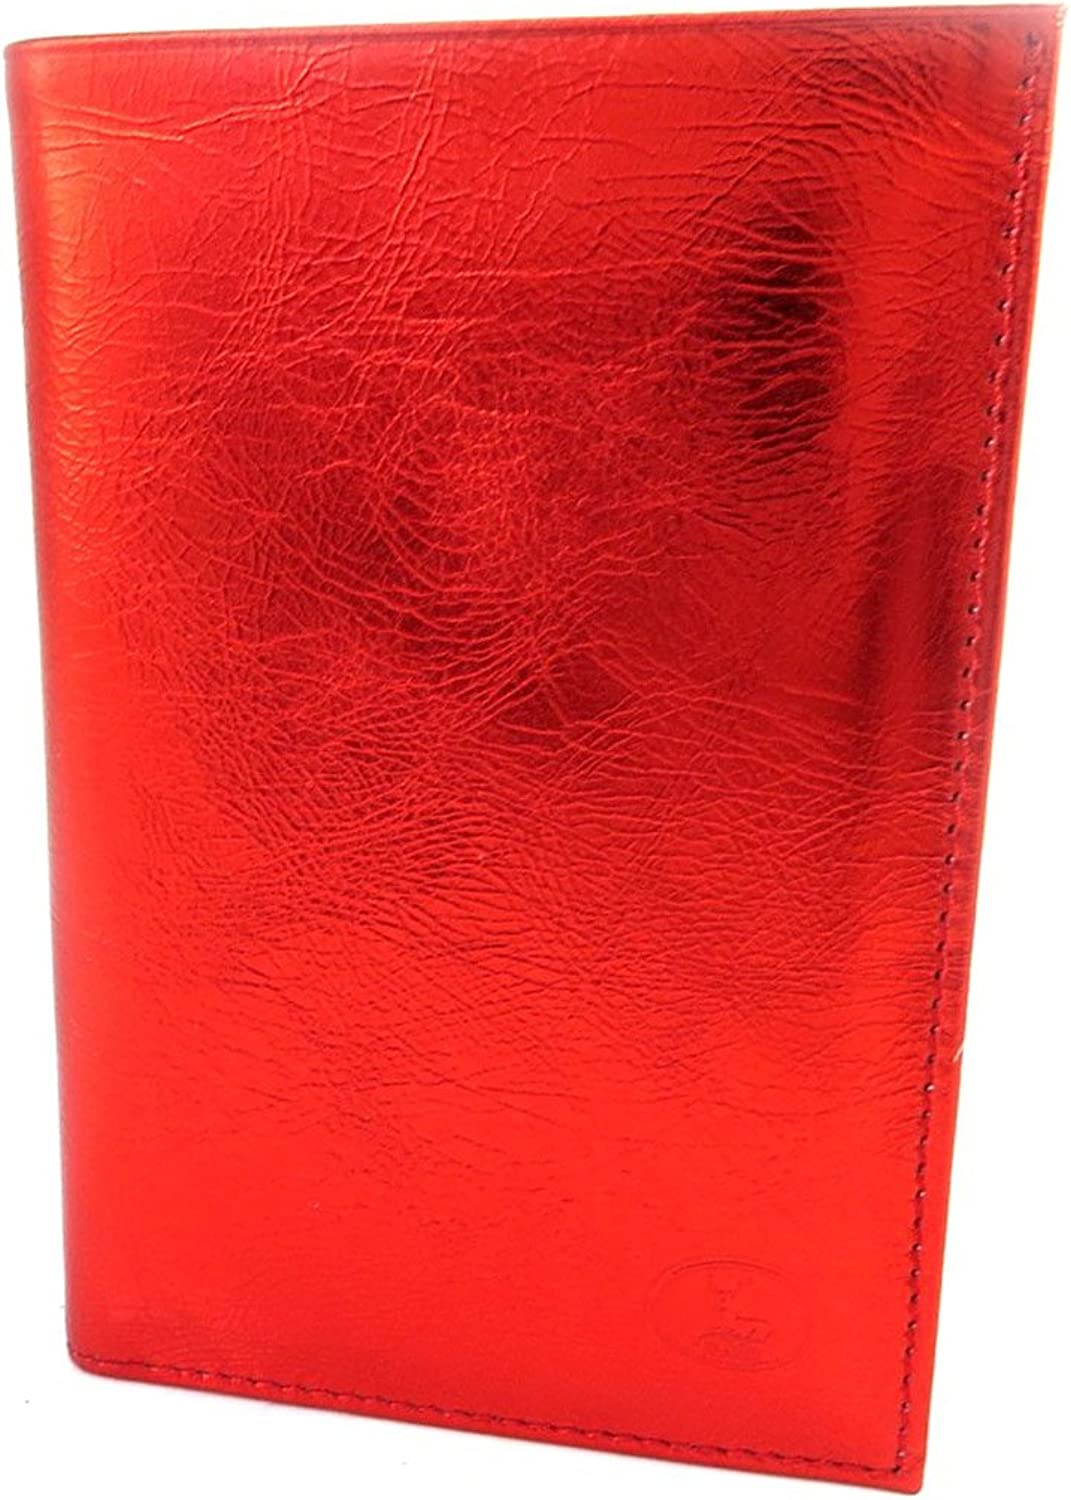 Leather wallet 'Frandi' red metal (+ cards).